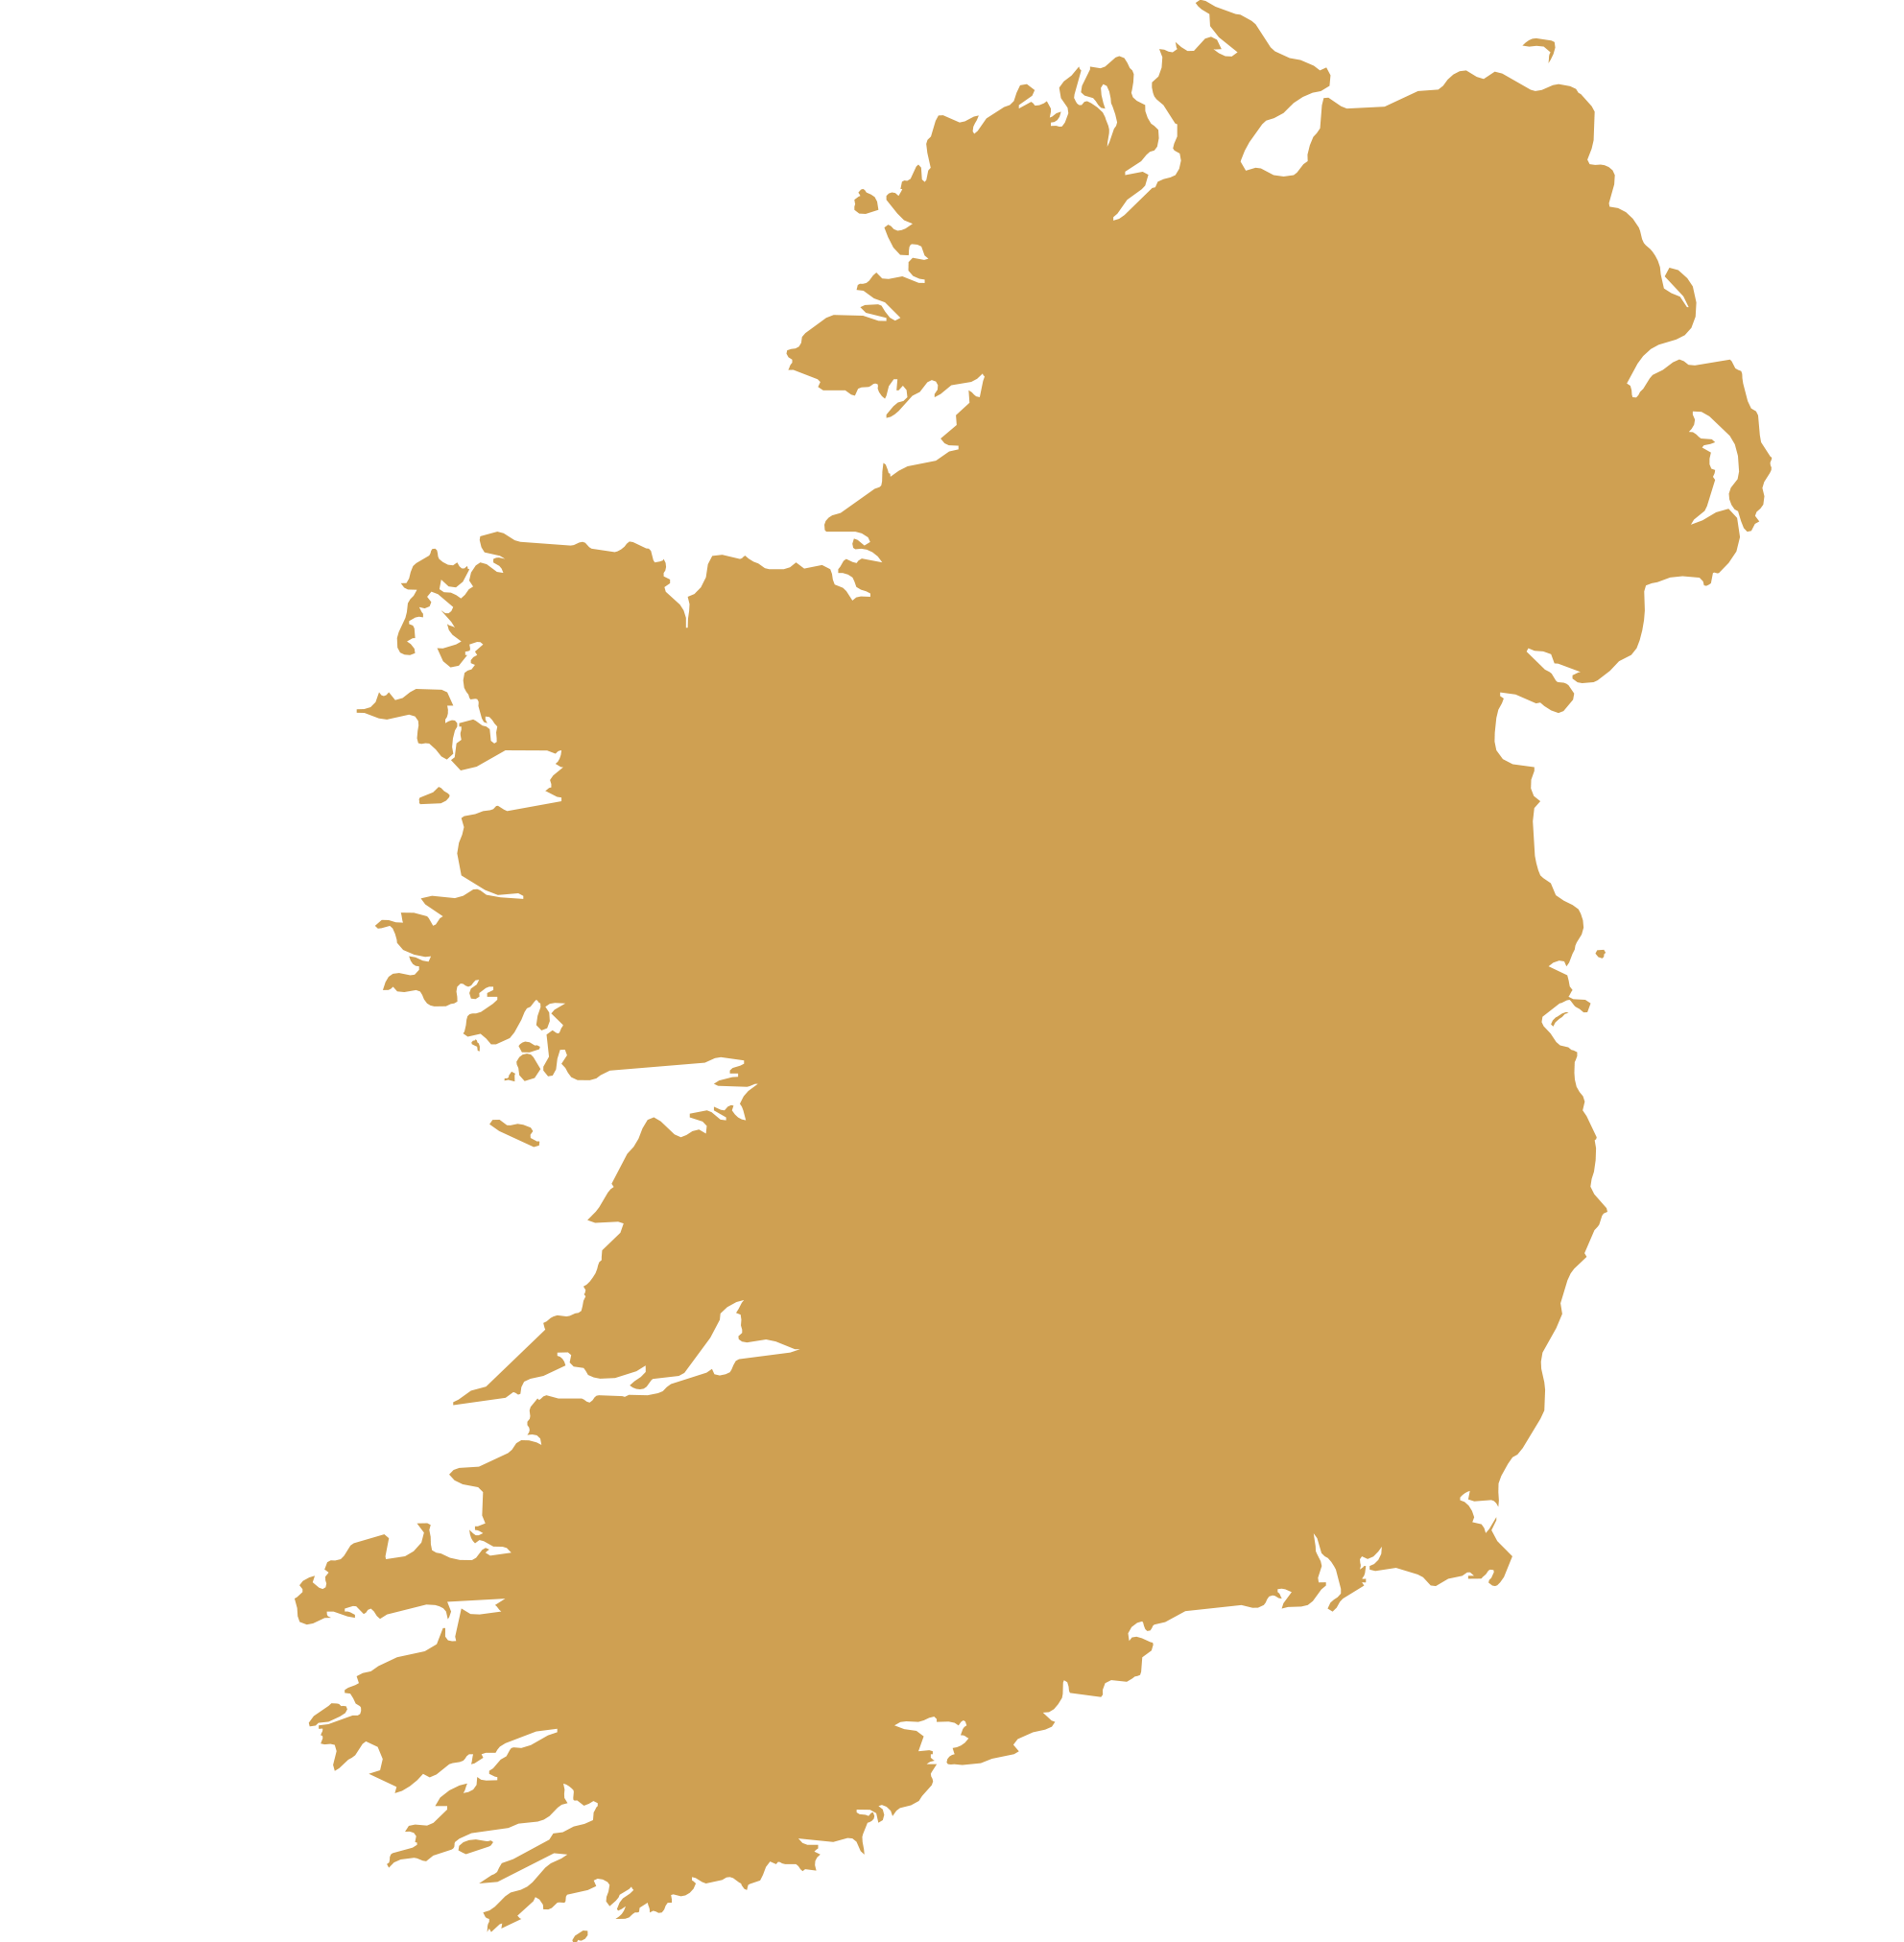 DMC Ireland map